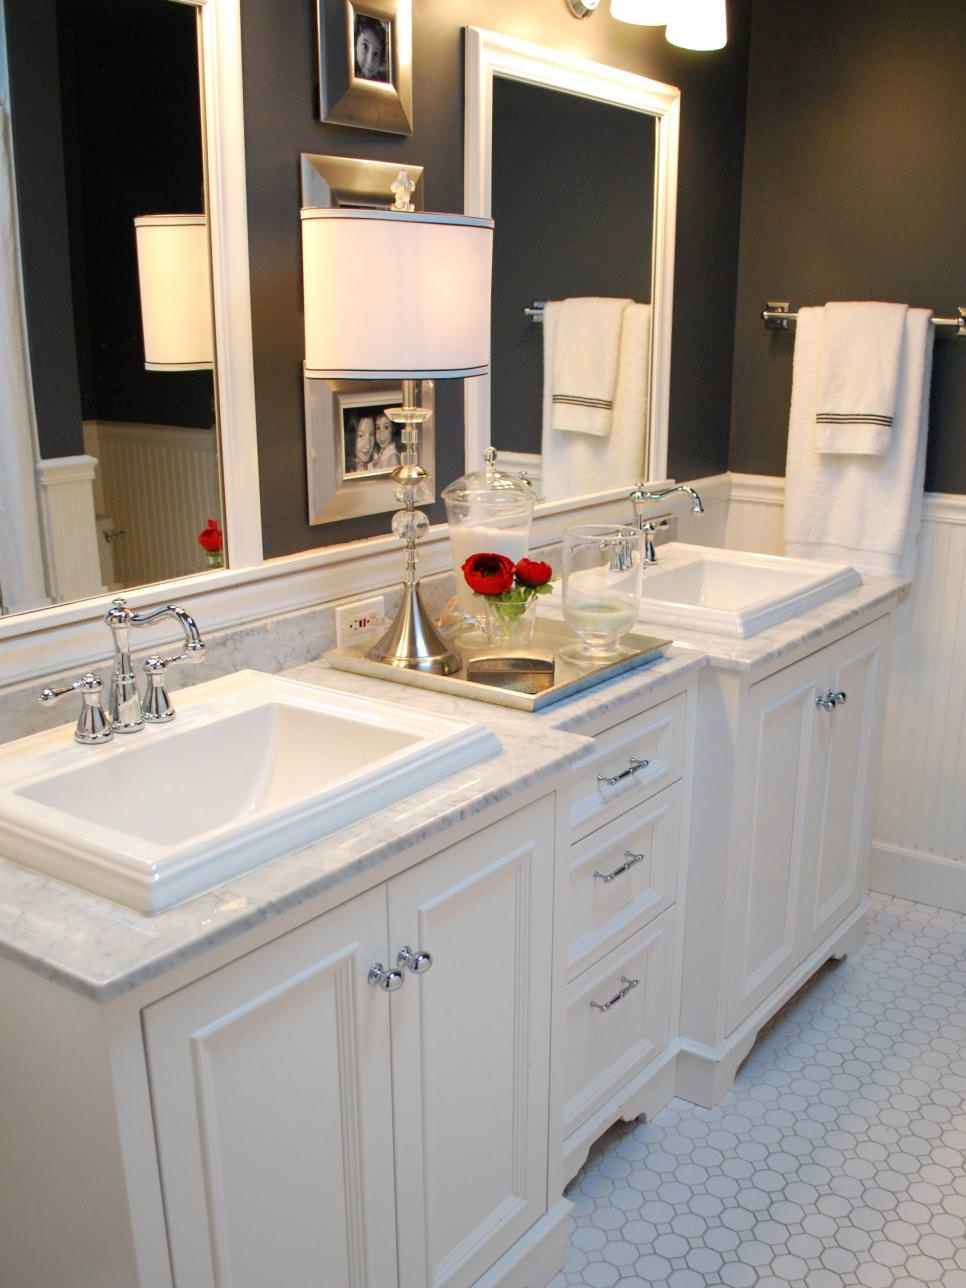 24 double bathroom vanity ideas bathroom designs for Vanity designs for bathrooms